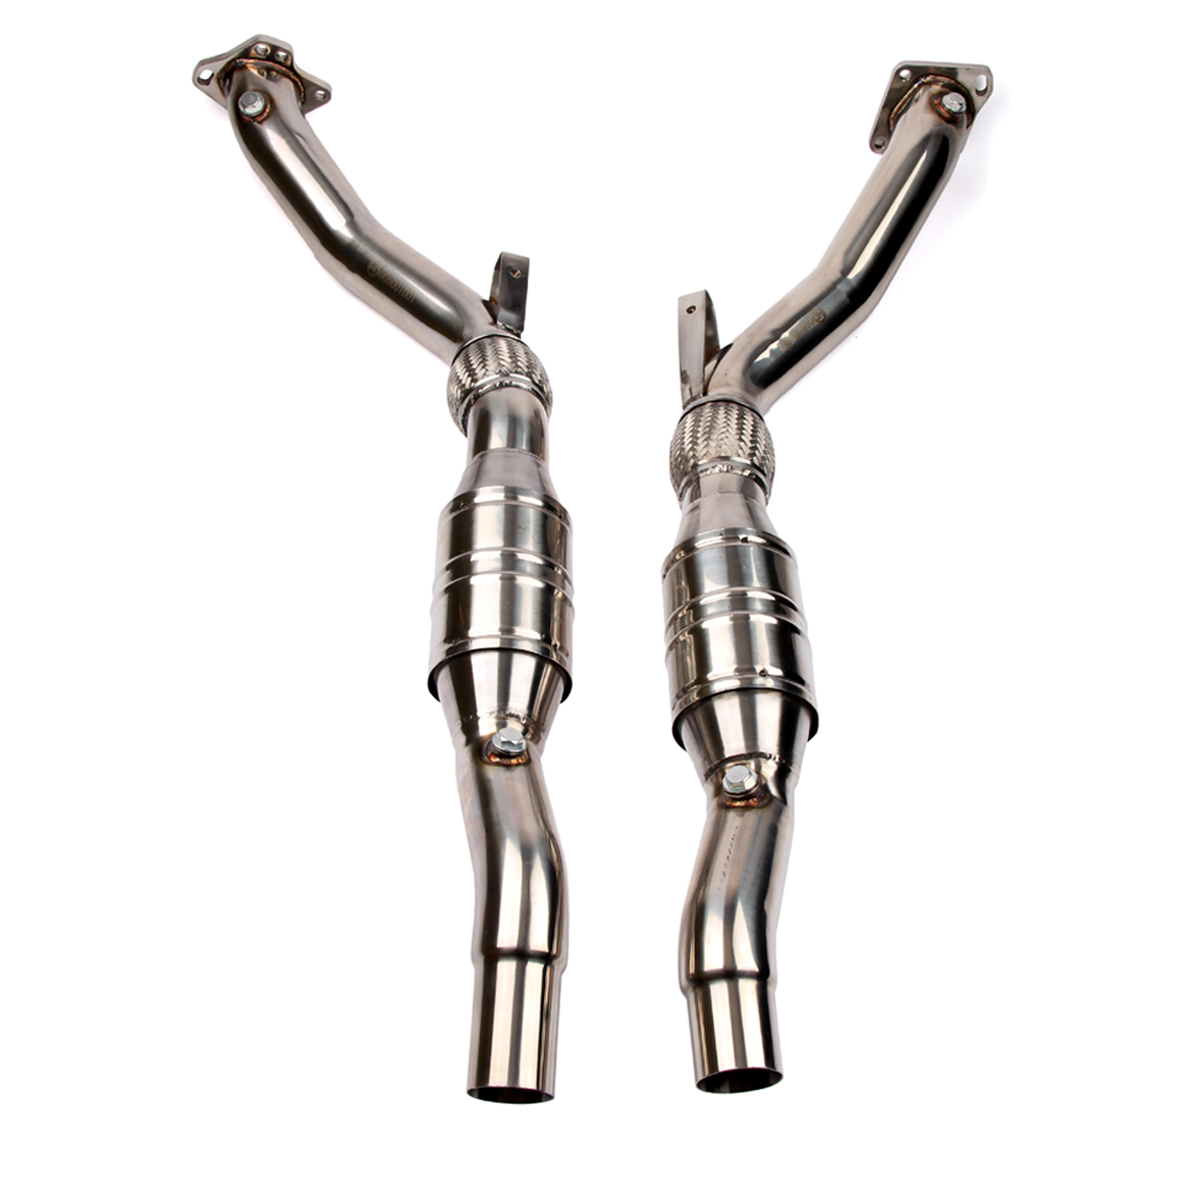 wagner 3 downpipe kit b5 audi s4 rs4 2 7t wag. Black Bedroom Furniture Sets. Home Design Ideas